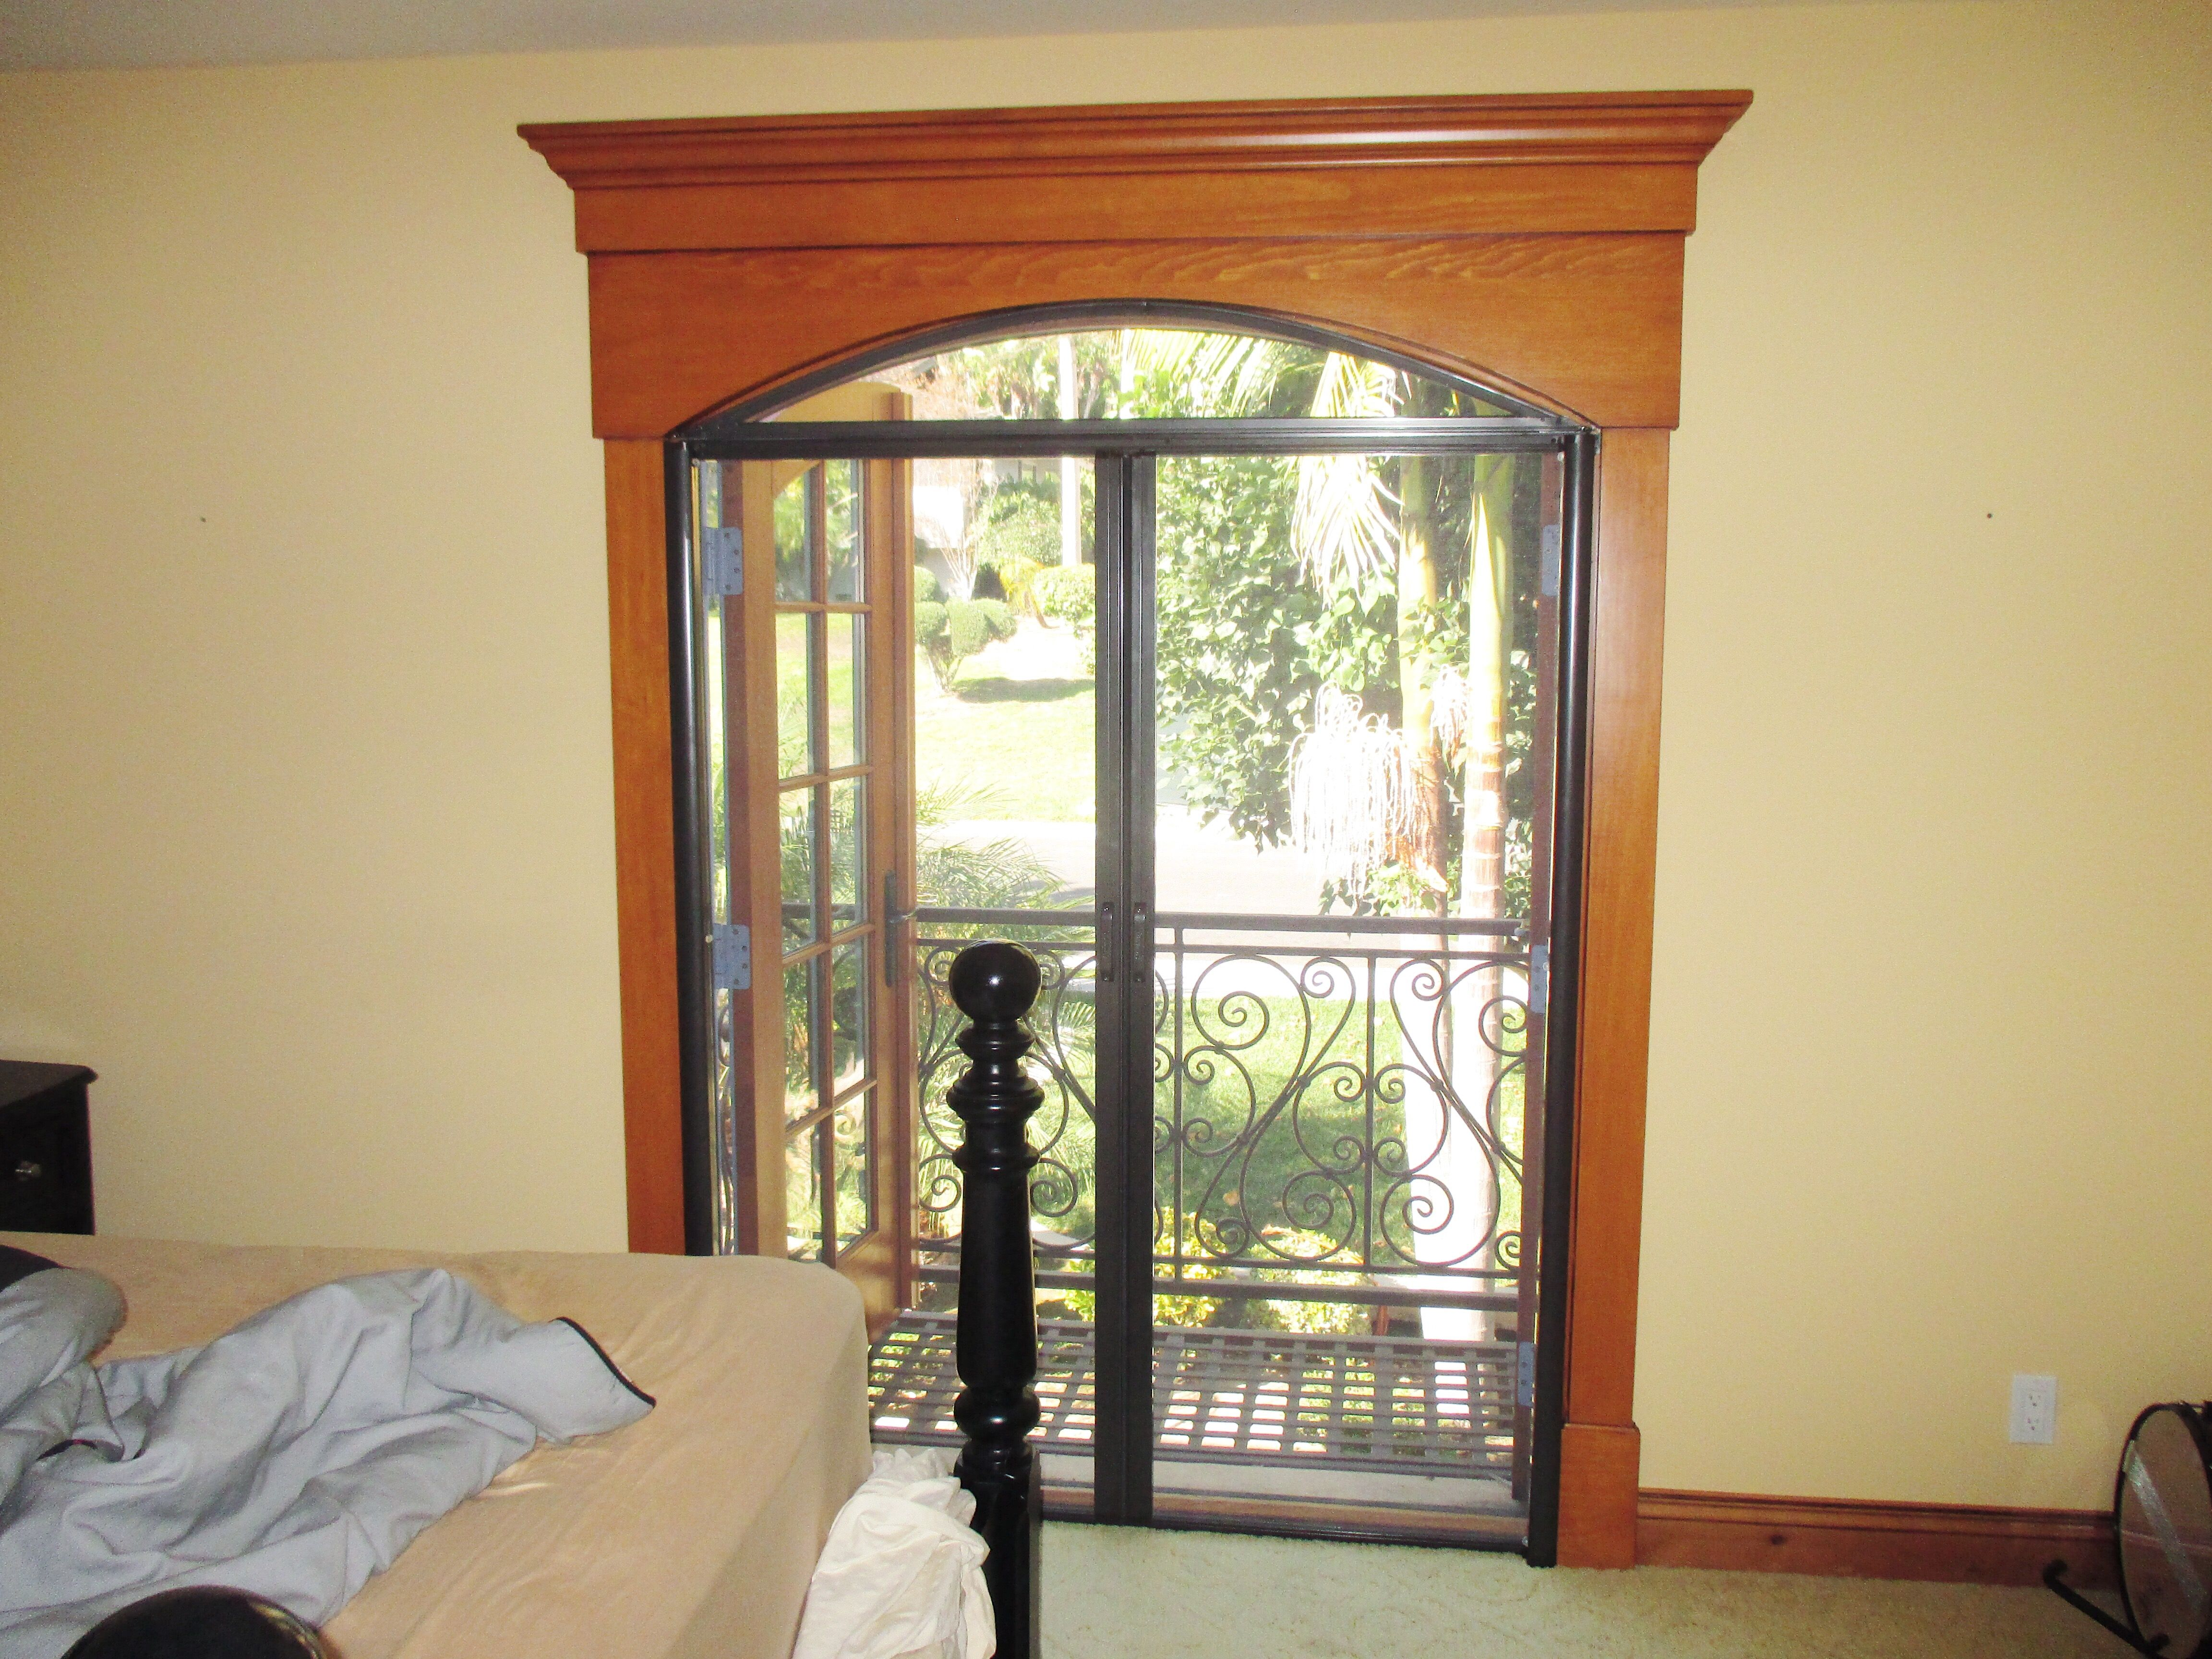 Have you been wanting a Retractable Screen Door, but your